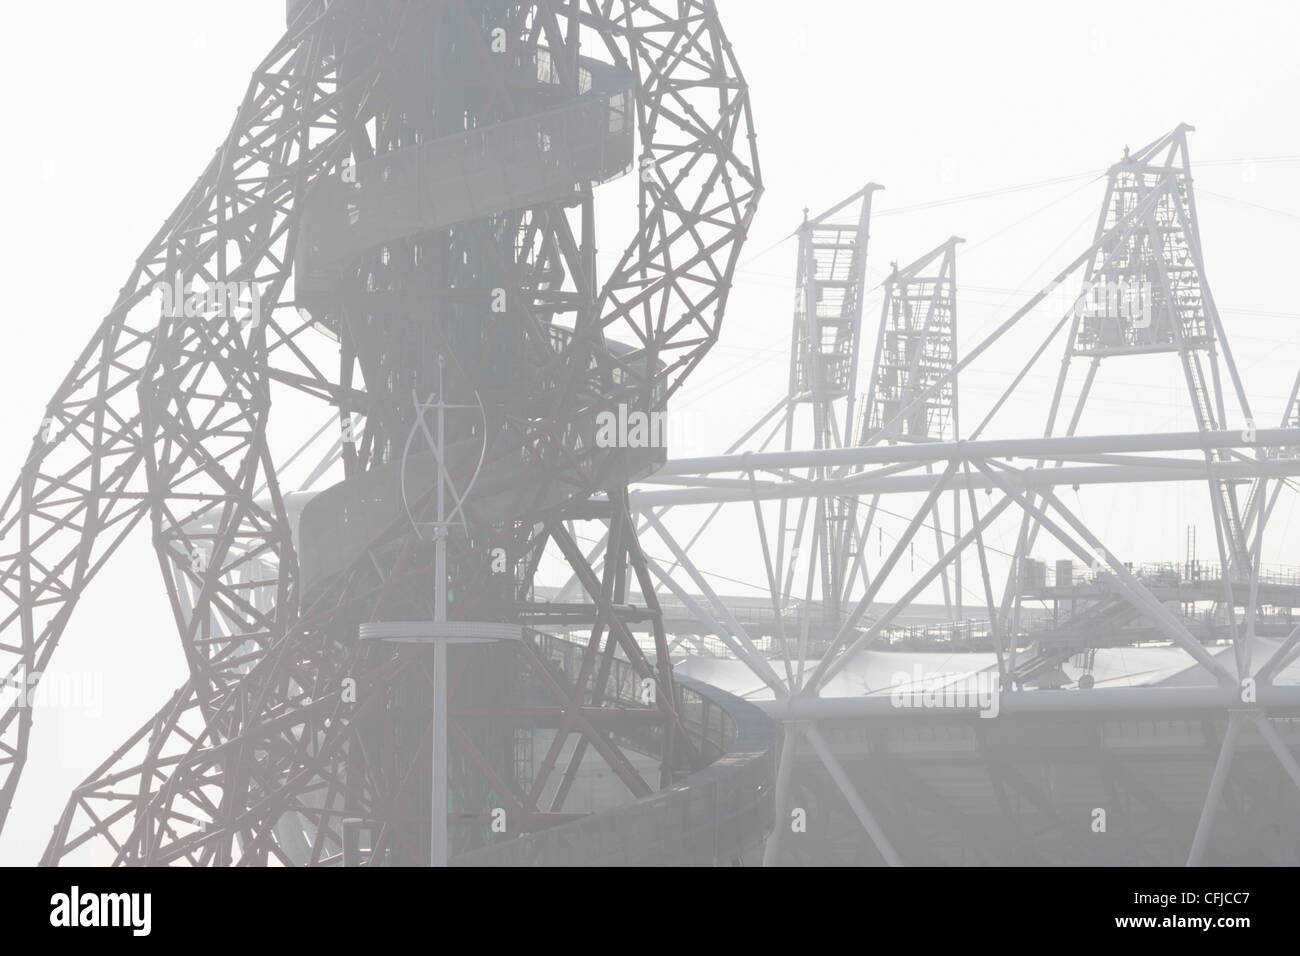 Structures of 2012 Olympic Park site showing The Orbit art tower and the main stadium at Stratford. The London Olympic - Stock Image